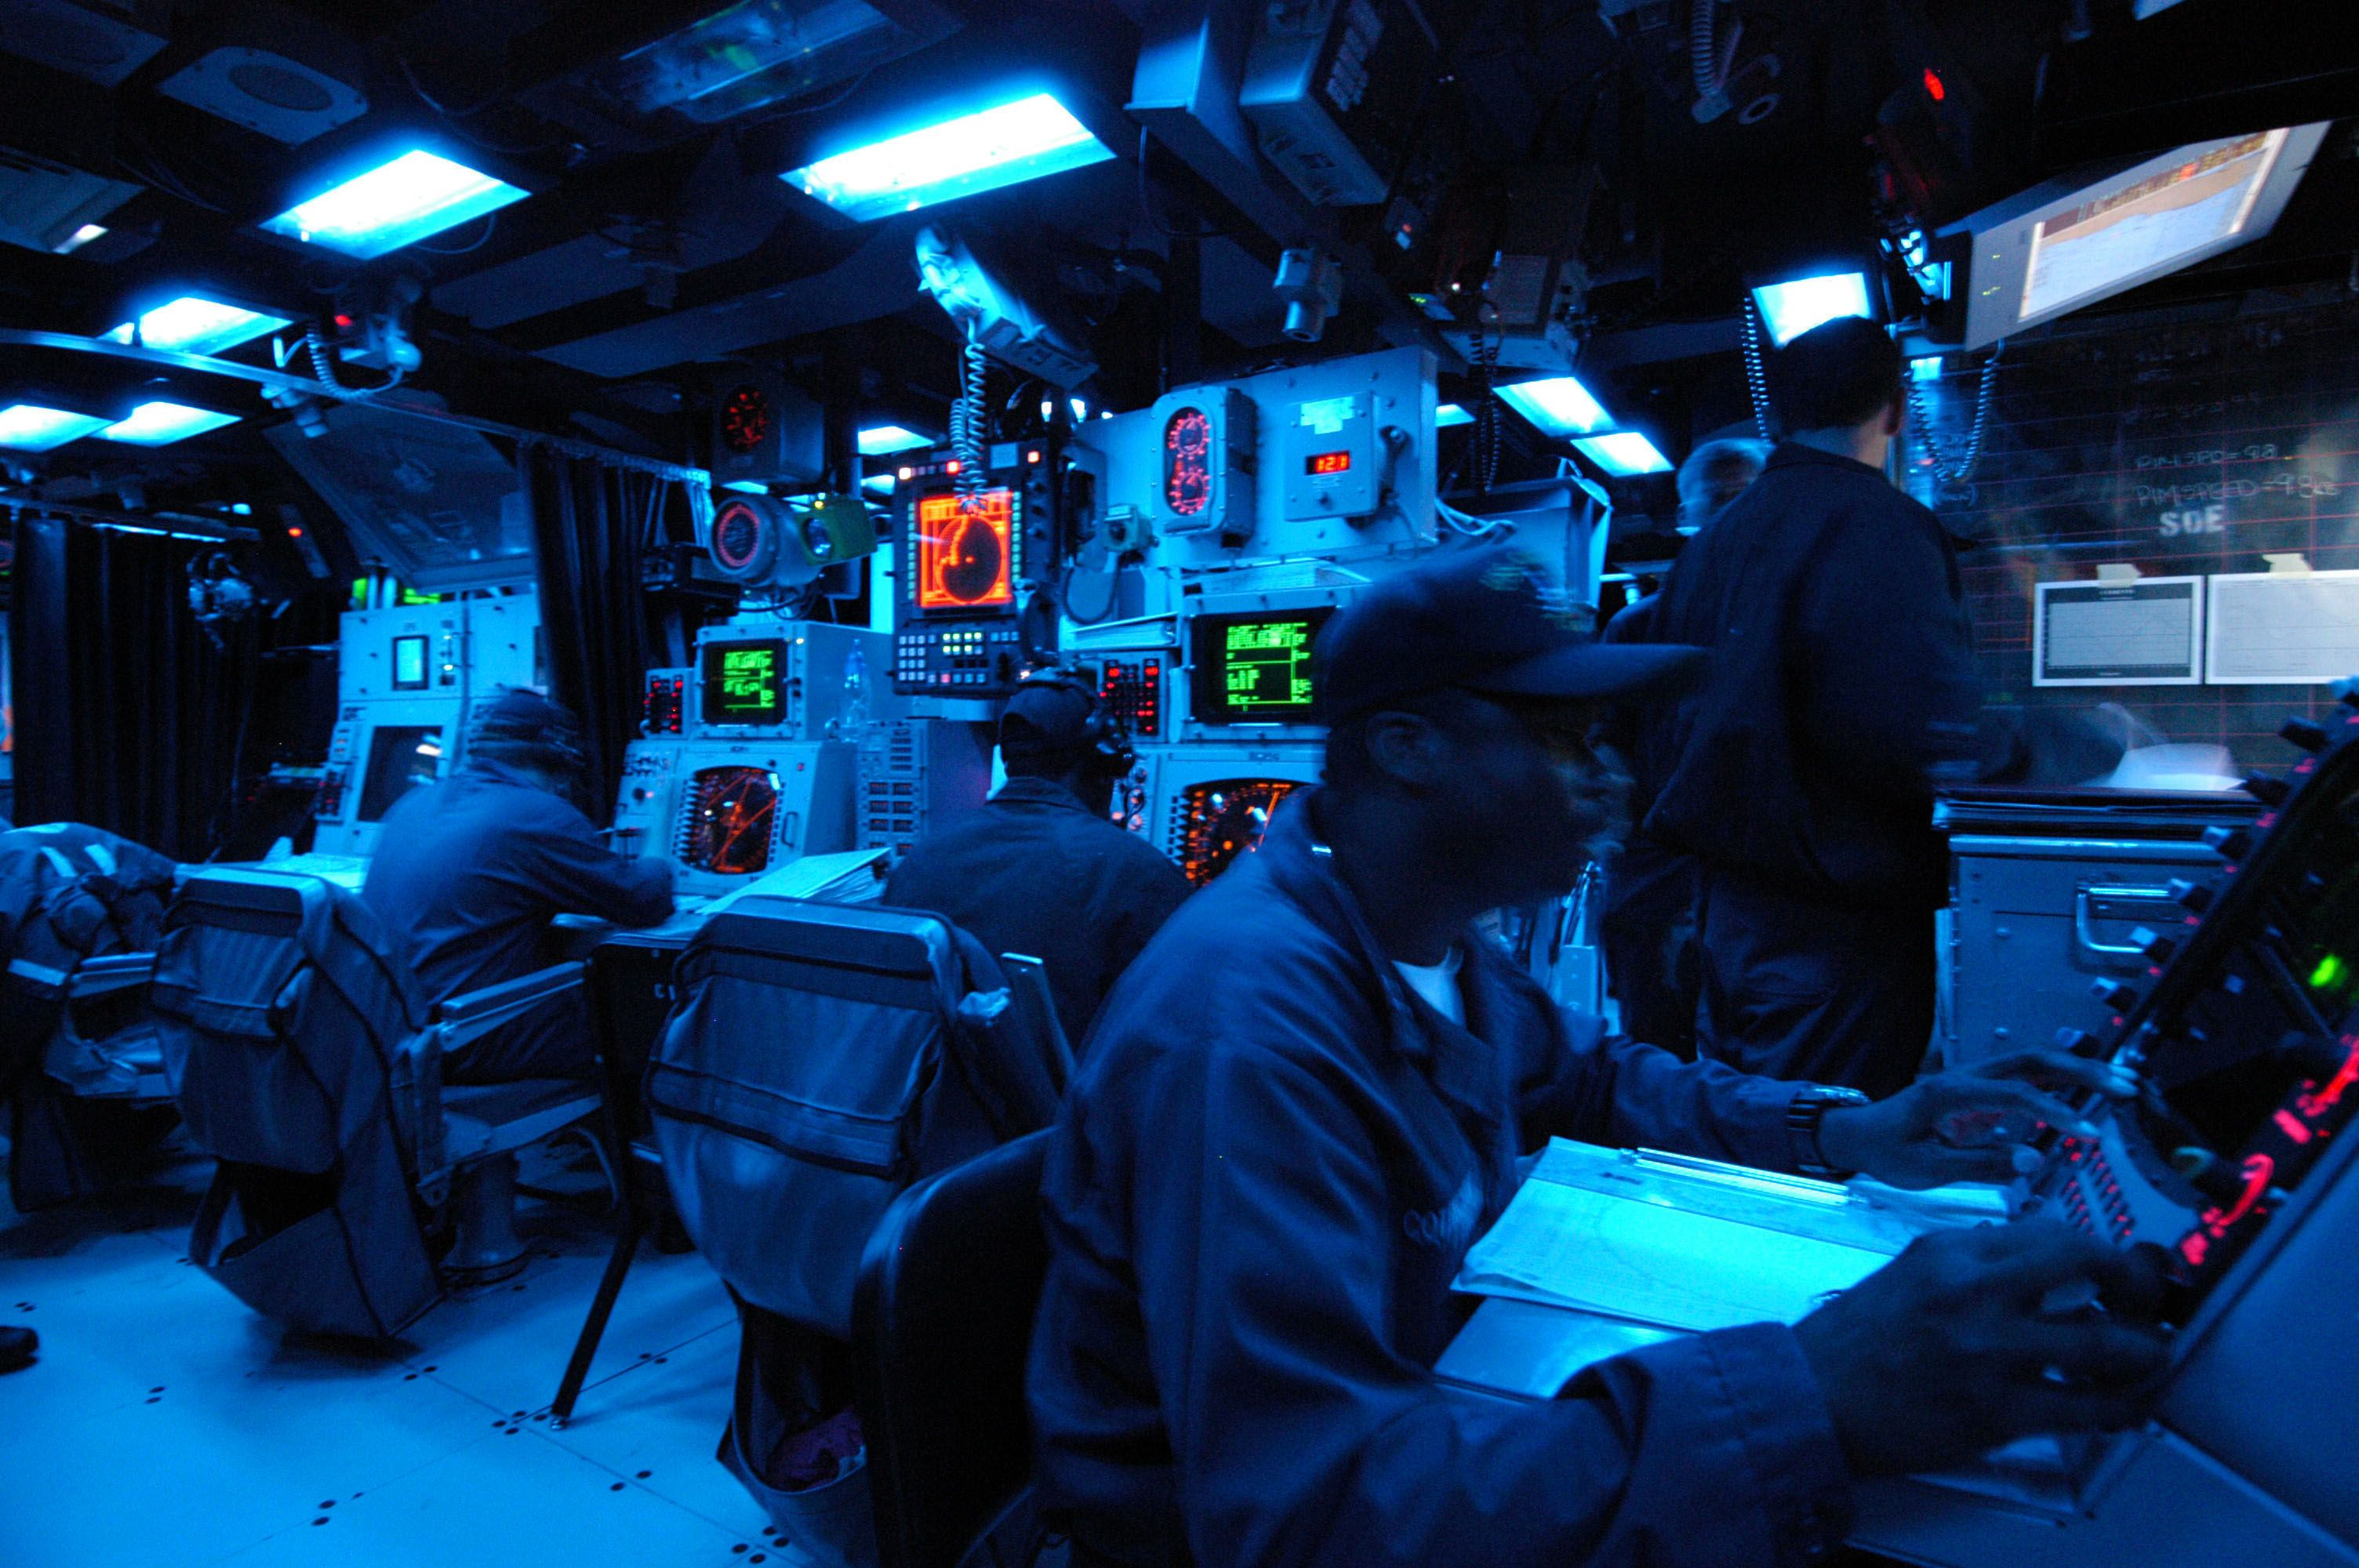 Pin By Dana Ta On Modern Warships Command And Control Nuclear Submarine Military